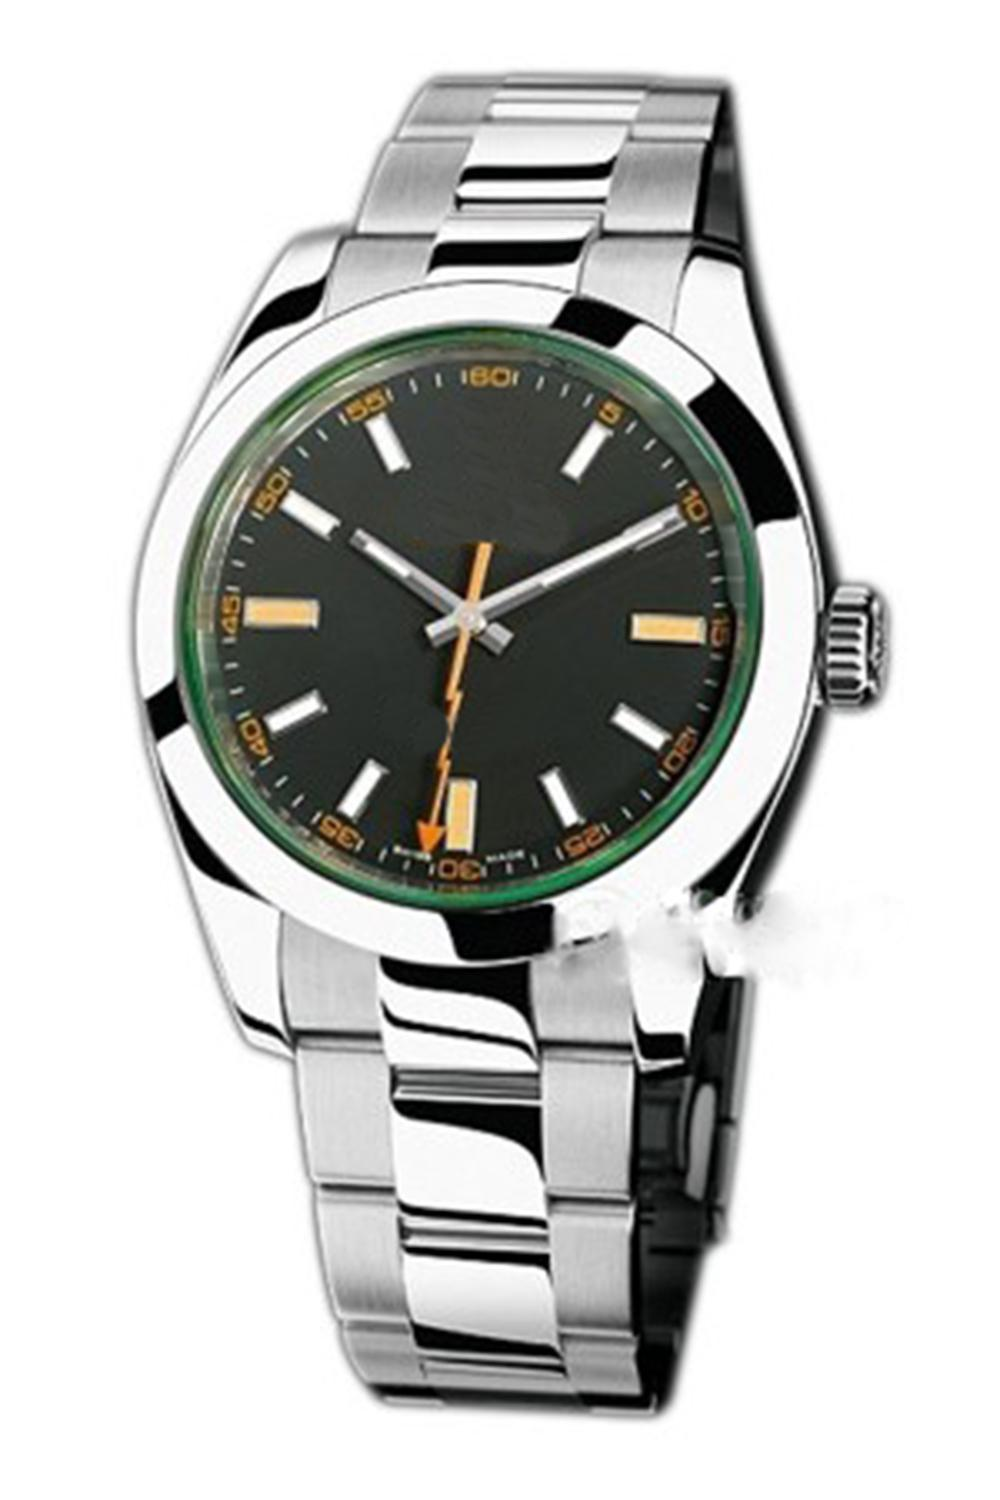 2524d421183 Top Sale Mens Watch High Quality Automatic Watches For Men Wristwatch  Sapphire Glass Stainless Steel Original Clasp 116610 16610 Best Earrings For  Toddlers ...